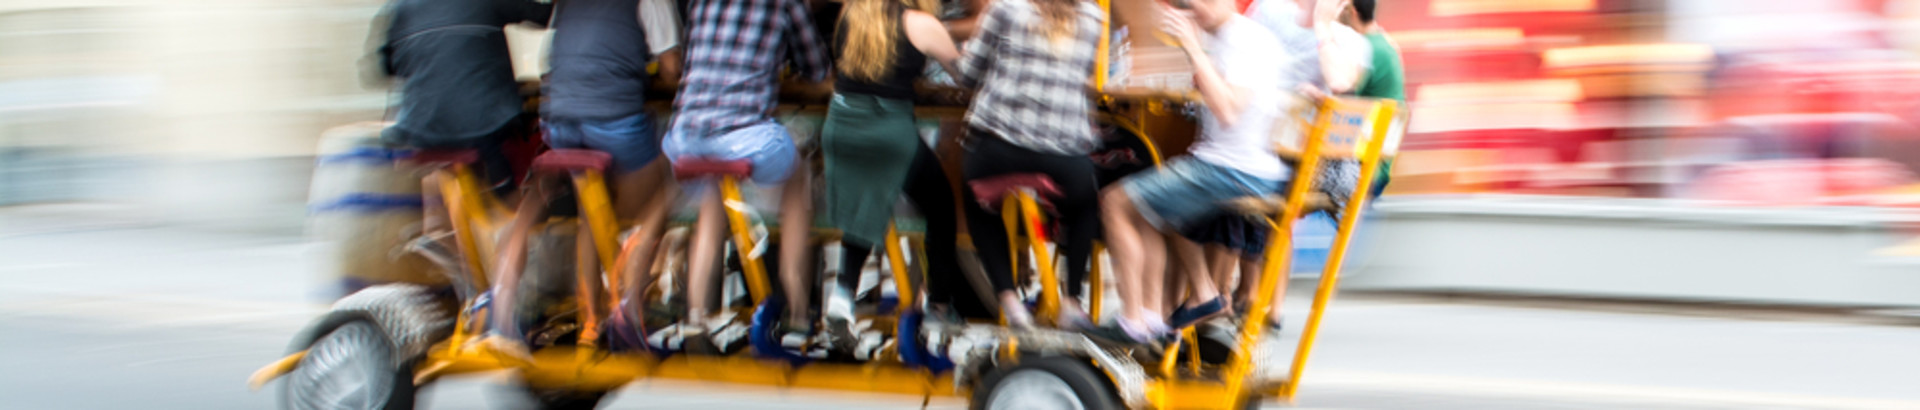 Beer bike blur